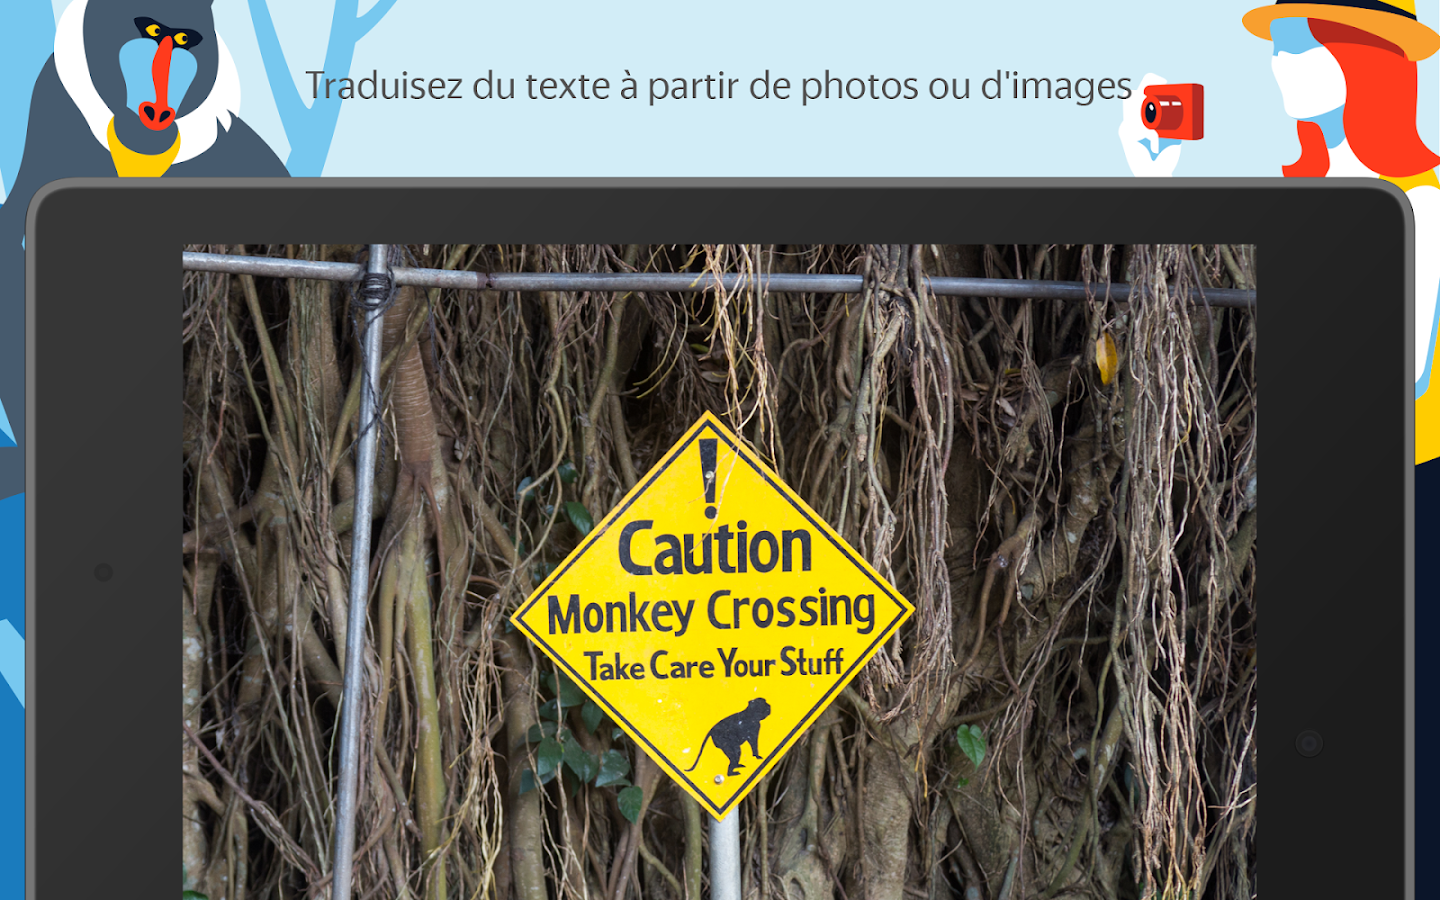 application traducteur hors ligne android